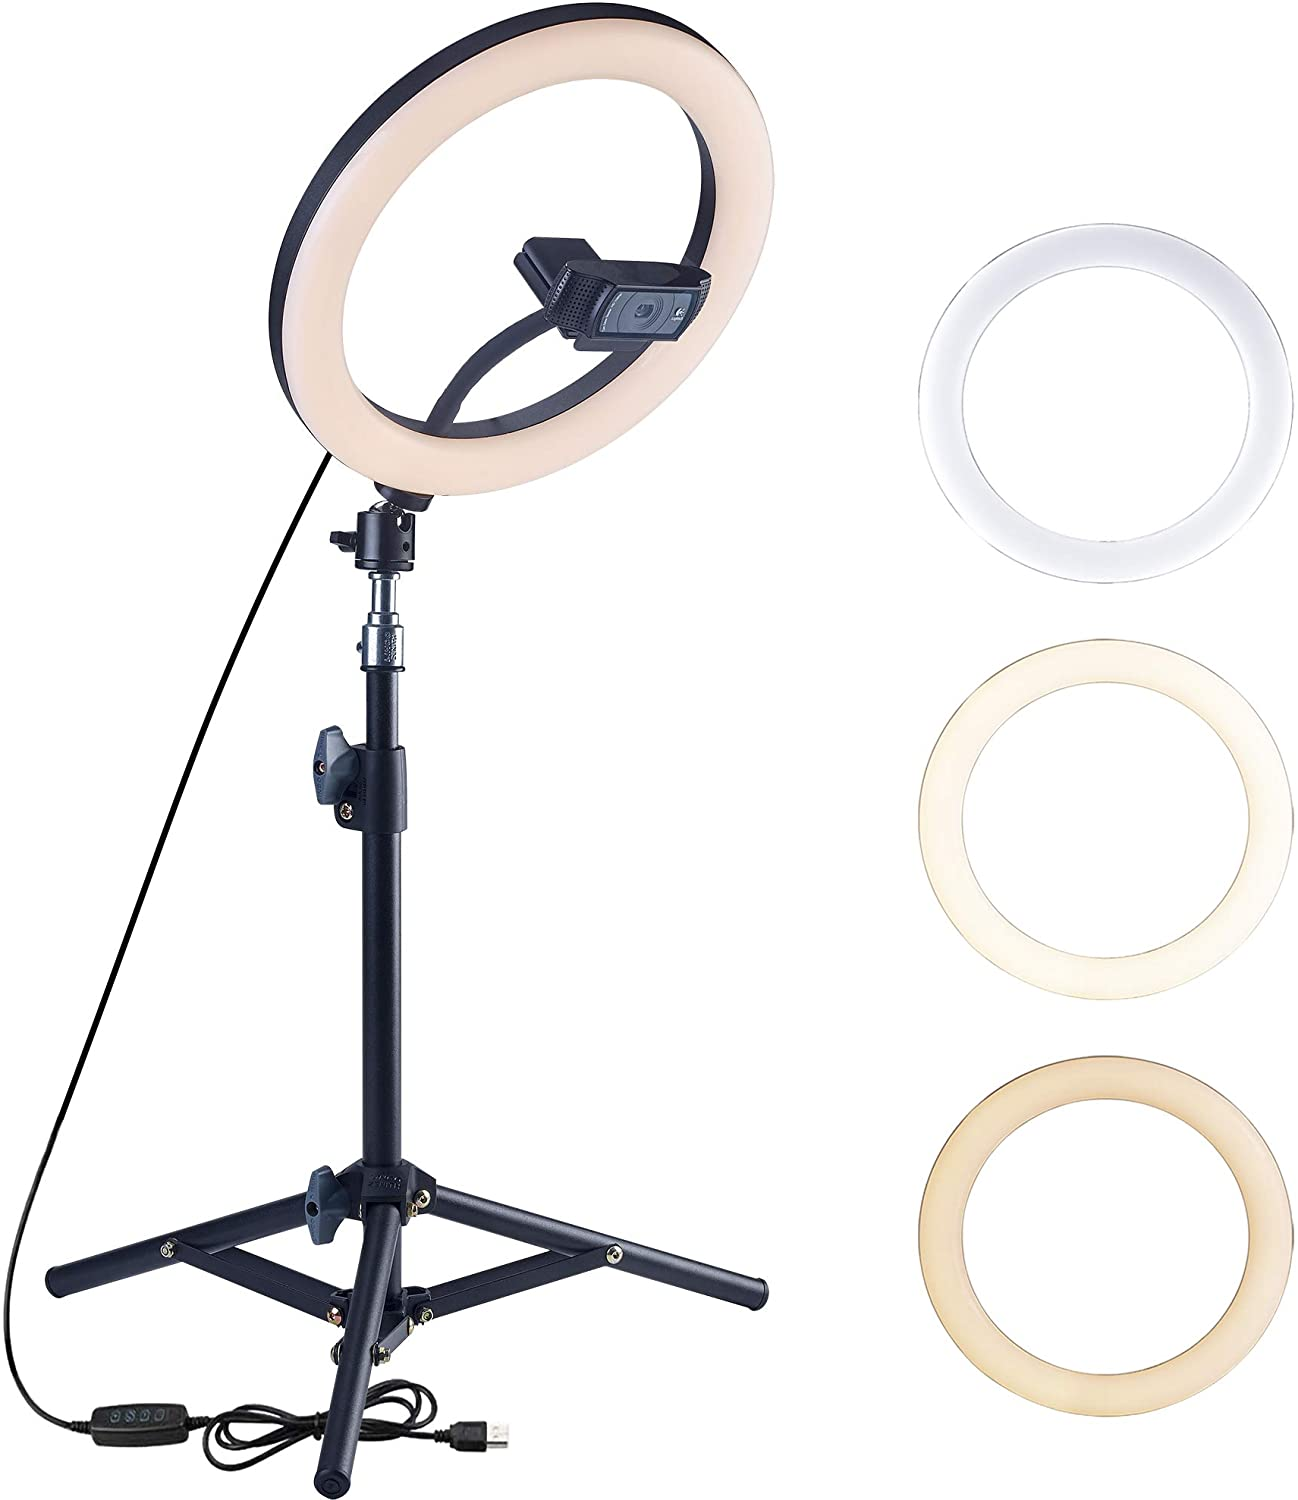 Dimmable Ring Light Image